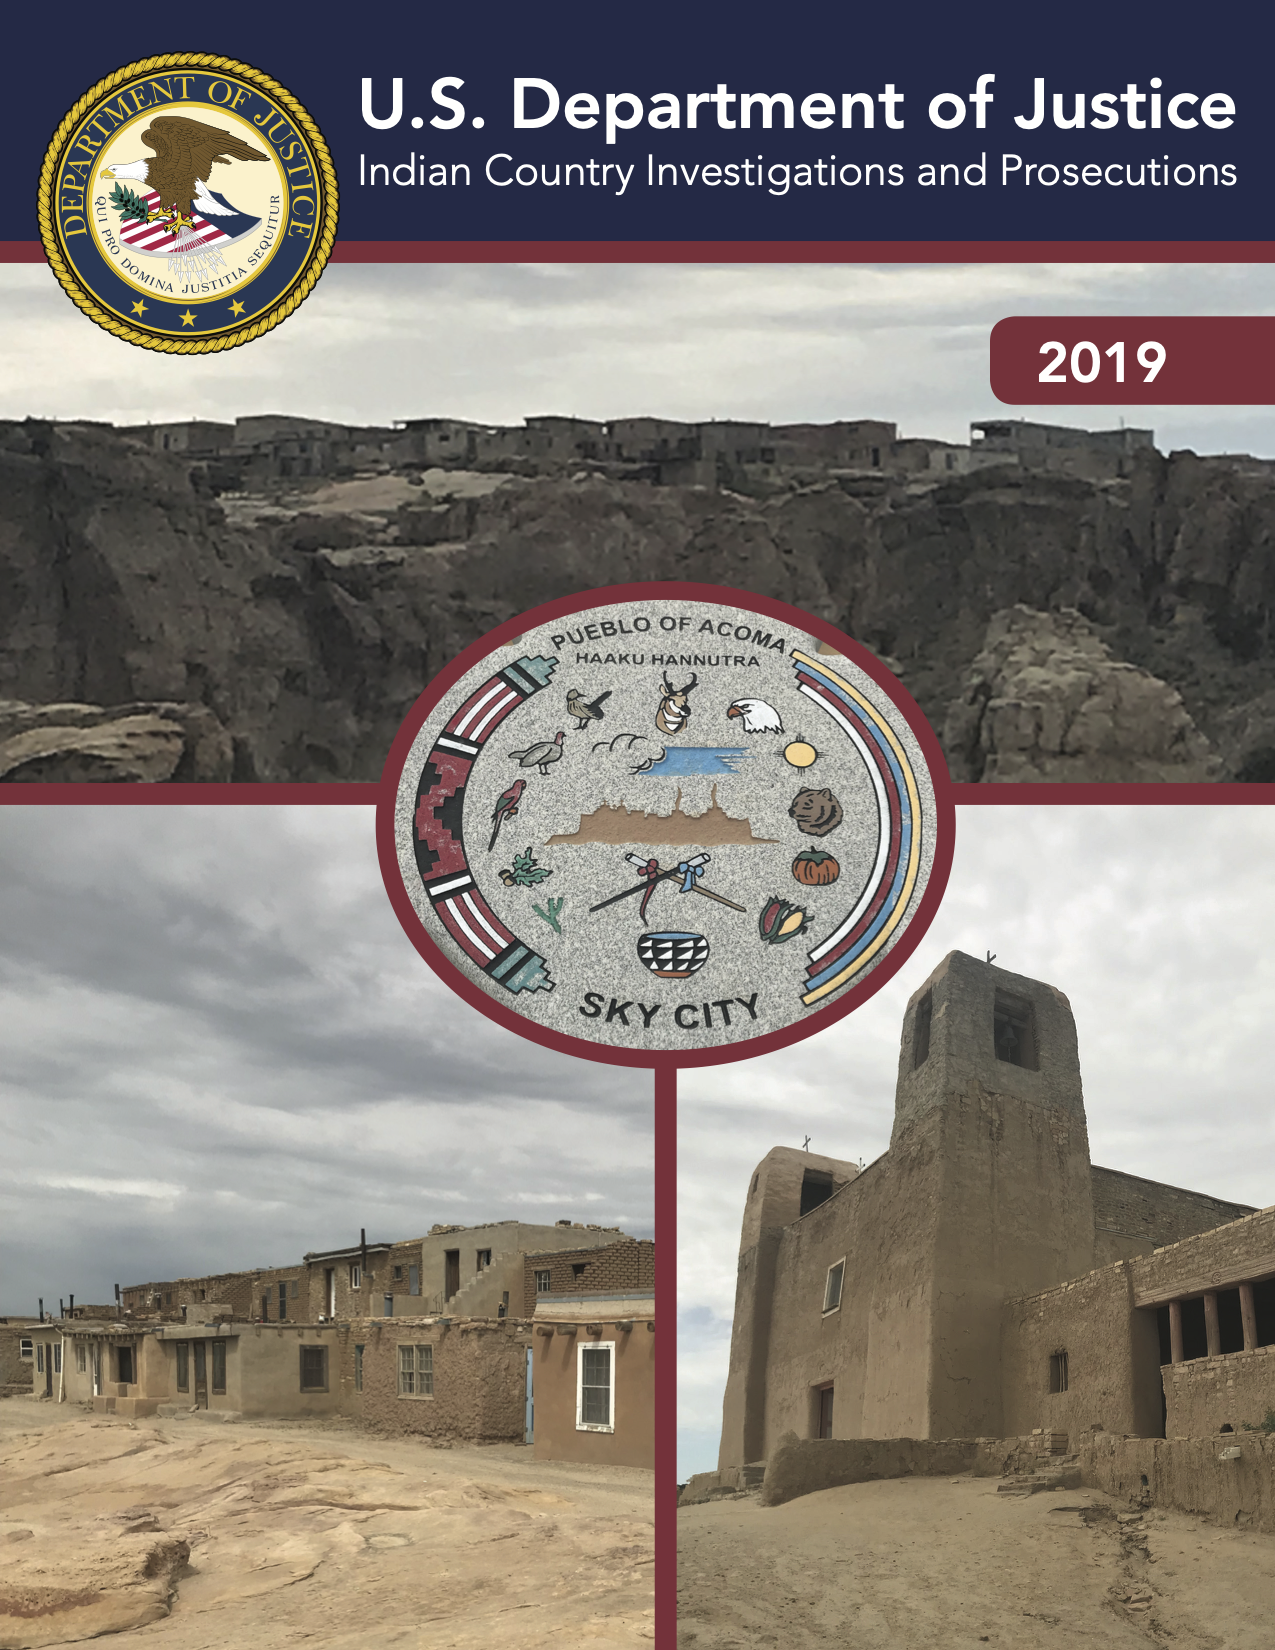 Indian Country Investigations and Prosecutions - Department of Justice